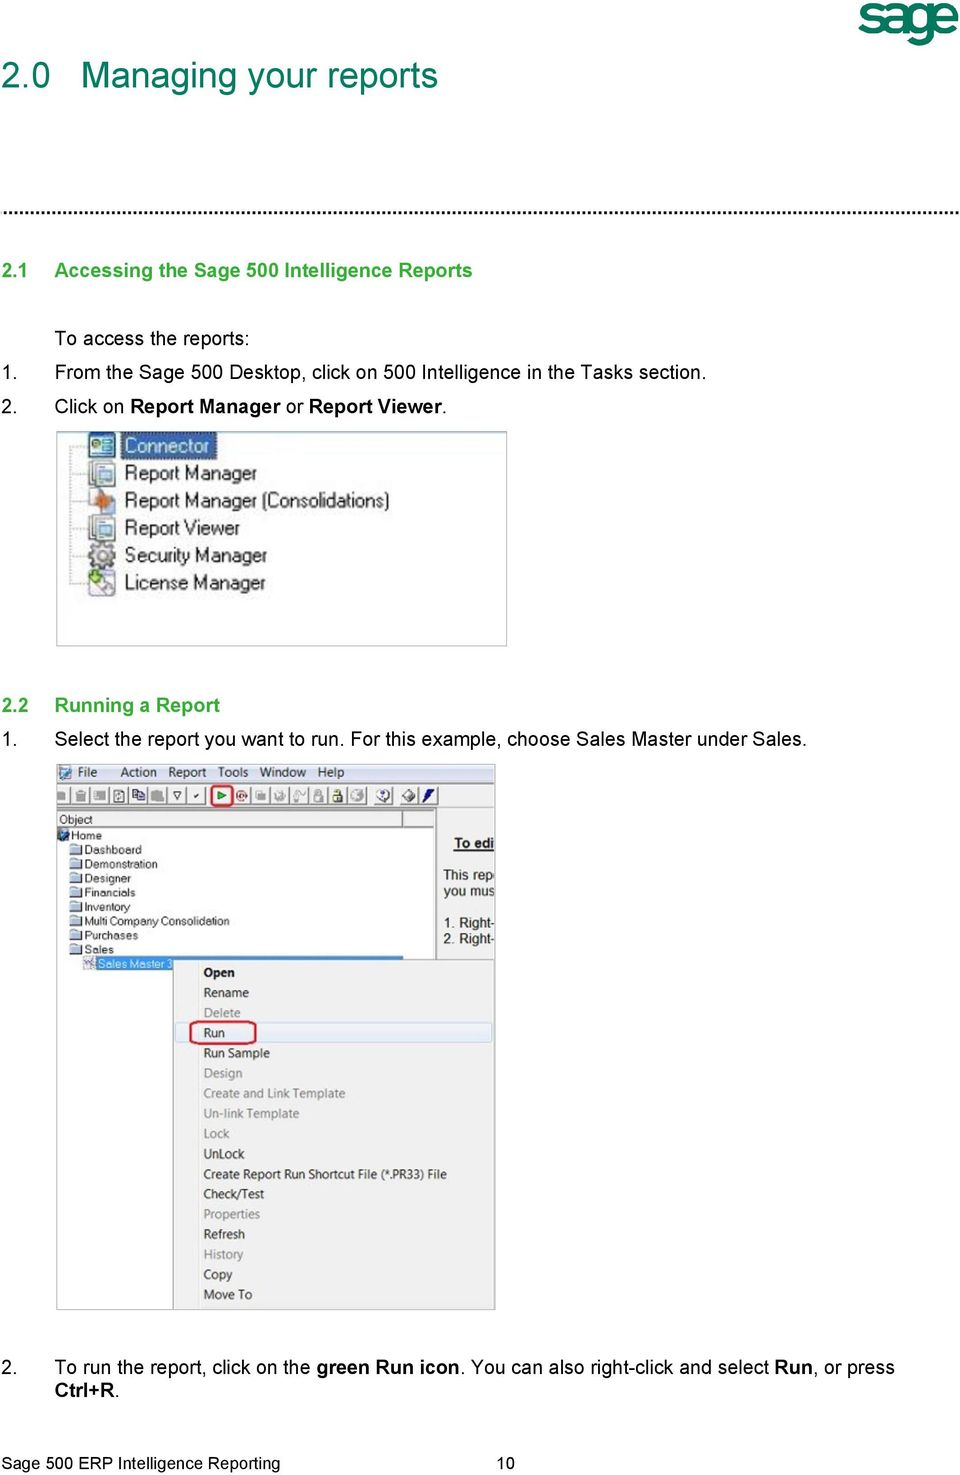 2.2 Running a Report 1. Select the report you want to run. For this example, choose Sales Master under Sales. 2.